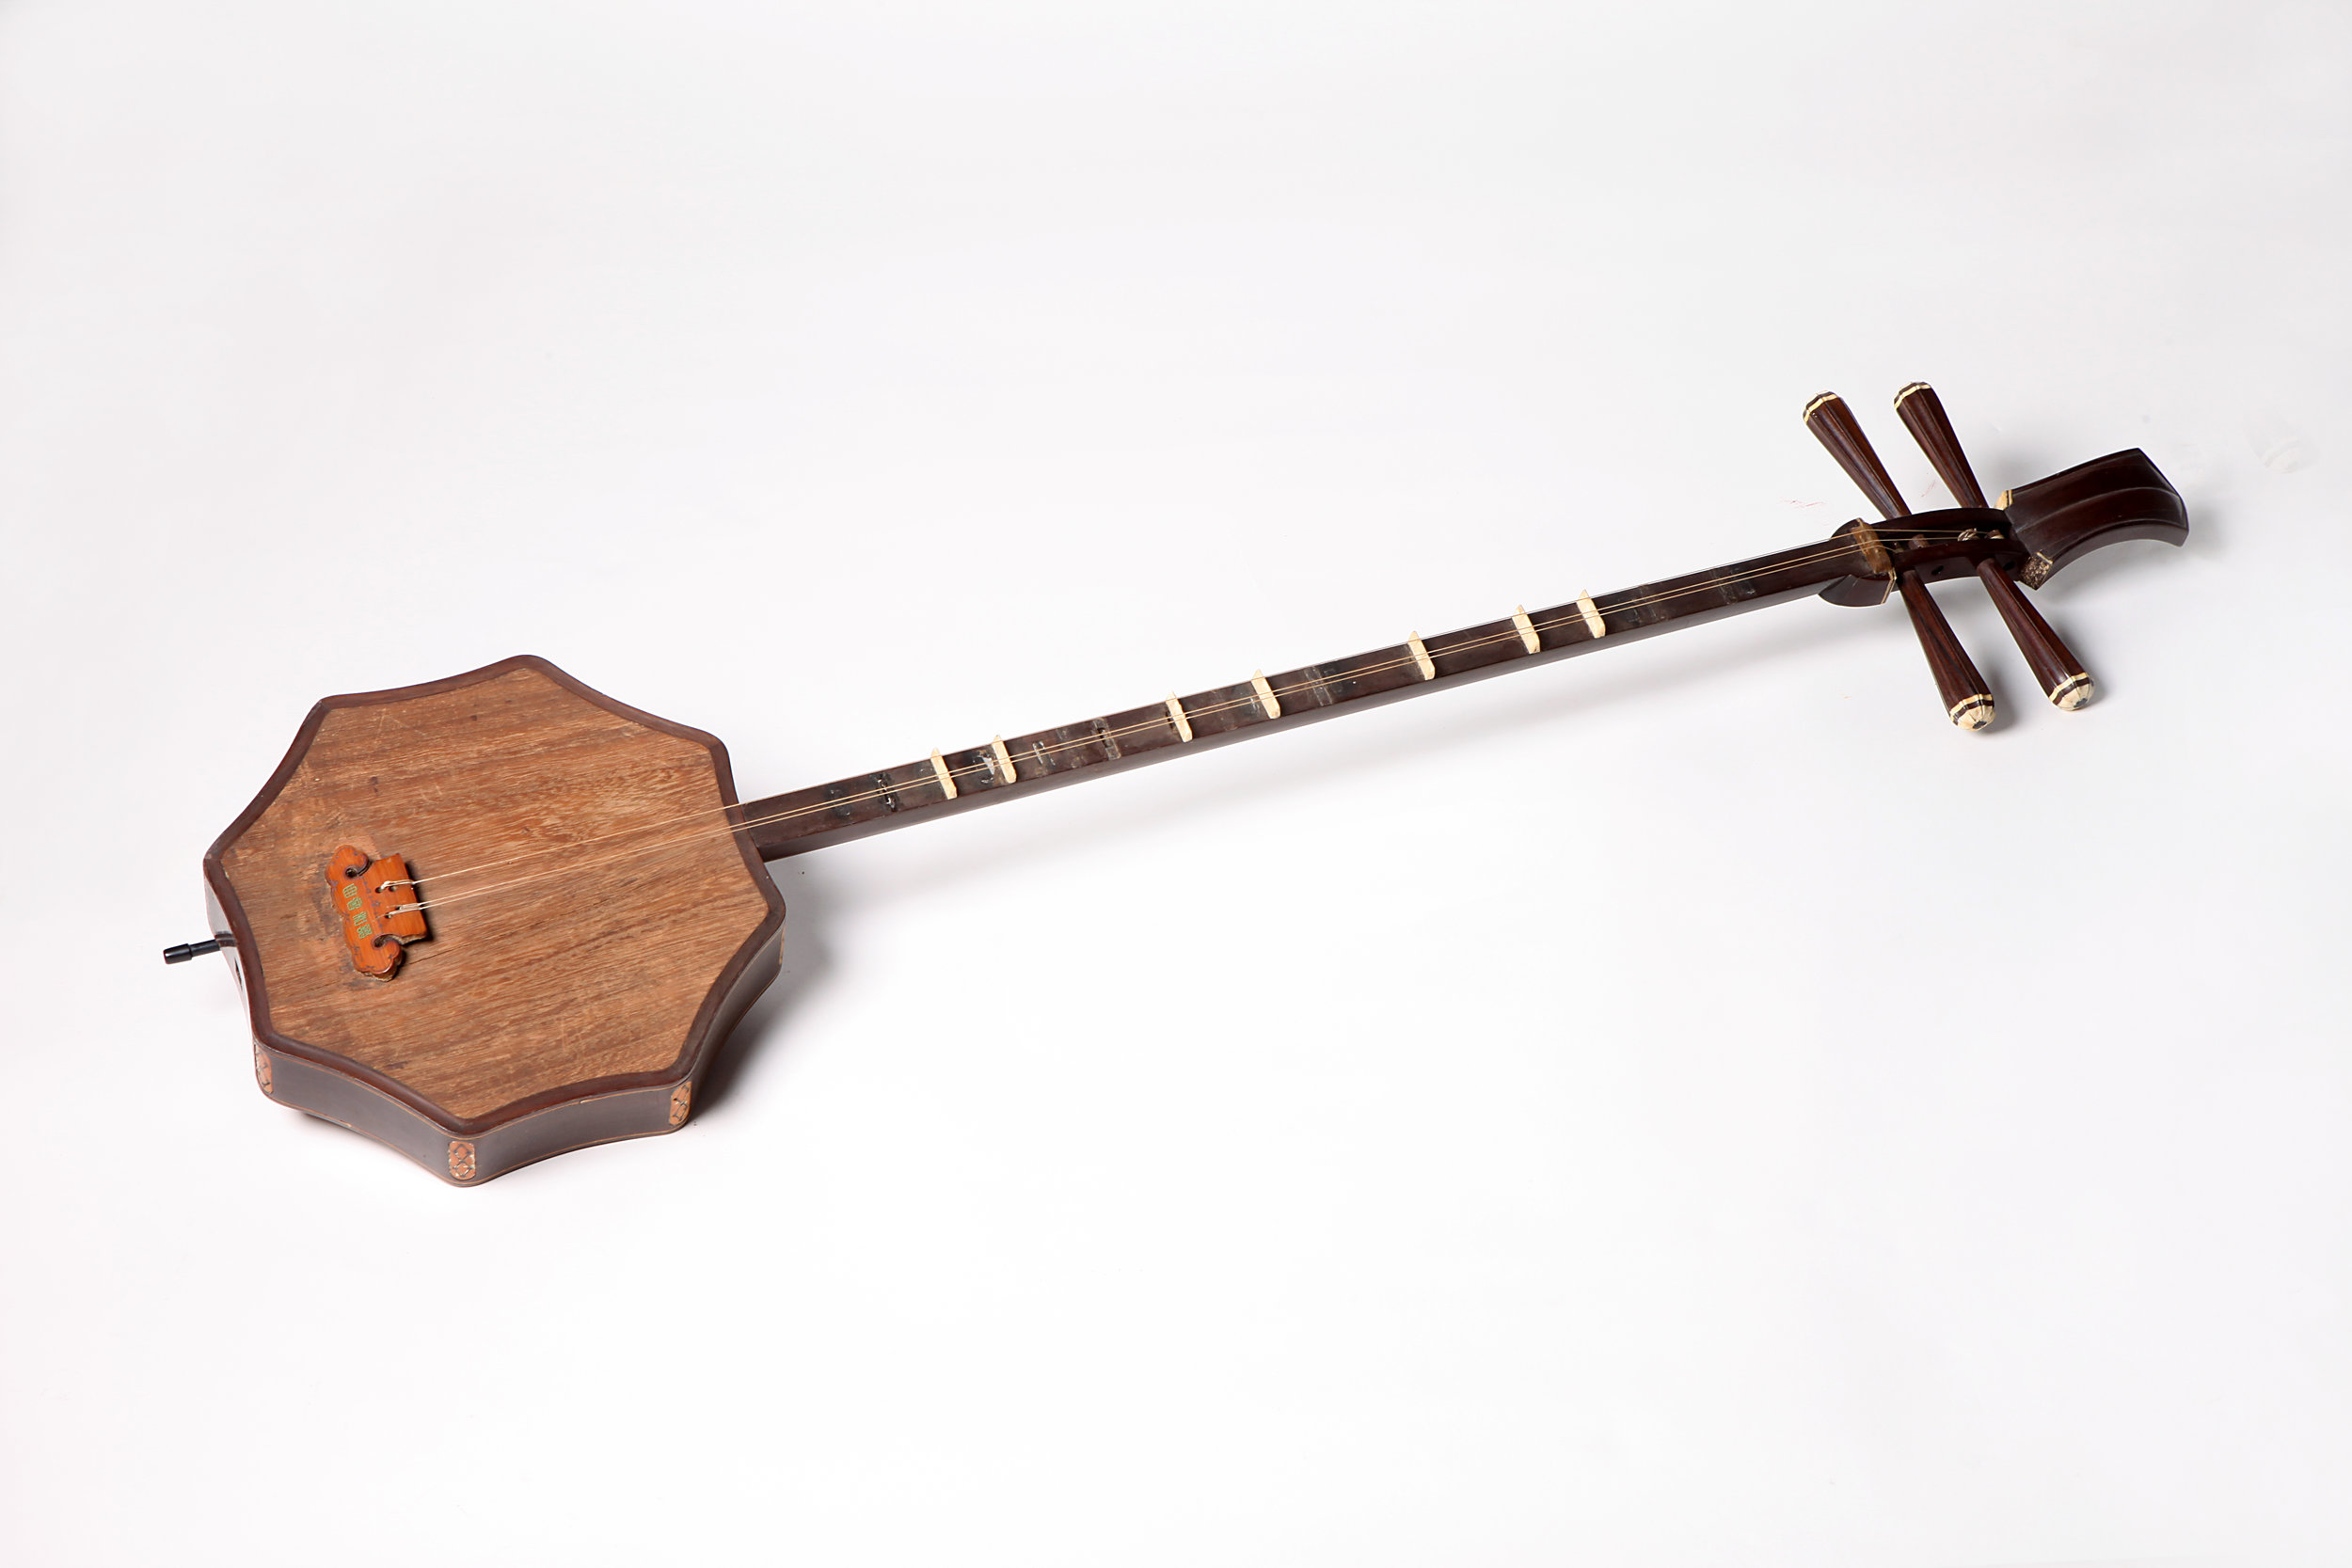 "Shuangqing   is originated from  ruan  (Chinese plucked string instrument) with thinner and longer neck than  ruan . The sound box of  shuangqing  is octagon-shaped with four pegs, four strings and thirteen or fourteen frets. According to  A Sequel to Wenxian Tongkao in Qing Dynasty (qingchao xu wenxian tongkao) , "" shuangqing  is in the  ruan  family and is an alto instrument. It is three  chi  and two  cun  long with an eight- cun  deep peg box. Its sound box is one  cun  and four  fen  thick. It has three strings, two ranges and thirteen frets and it is played by plucking."""